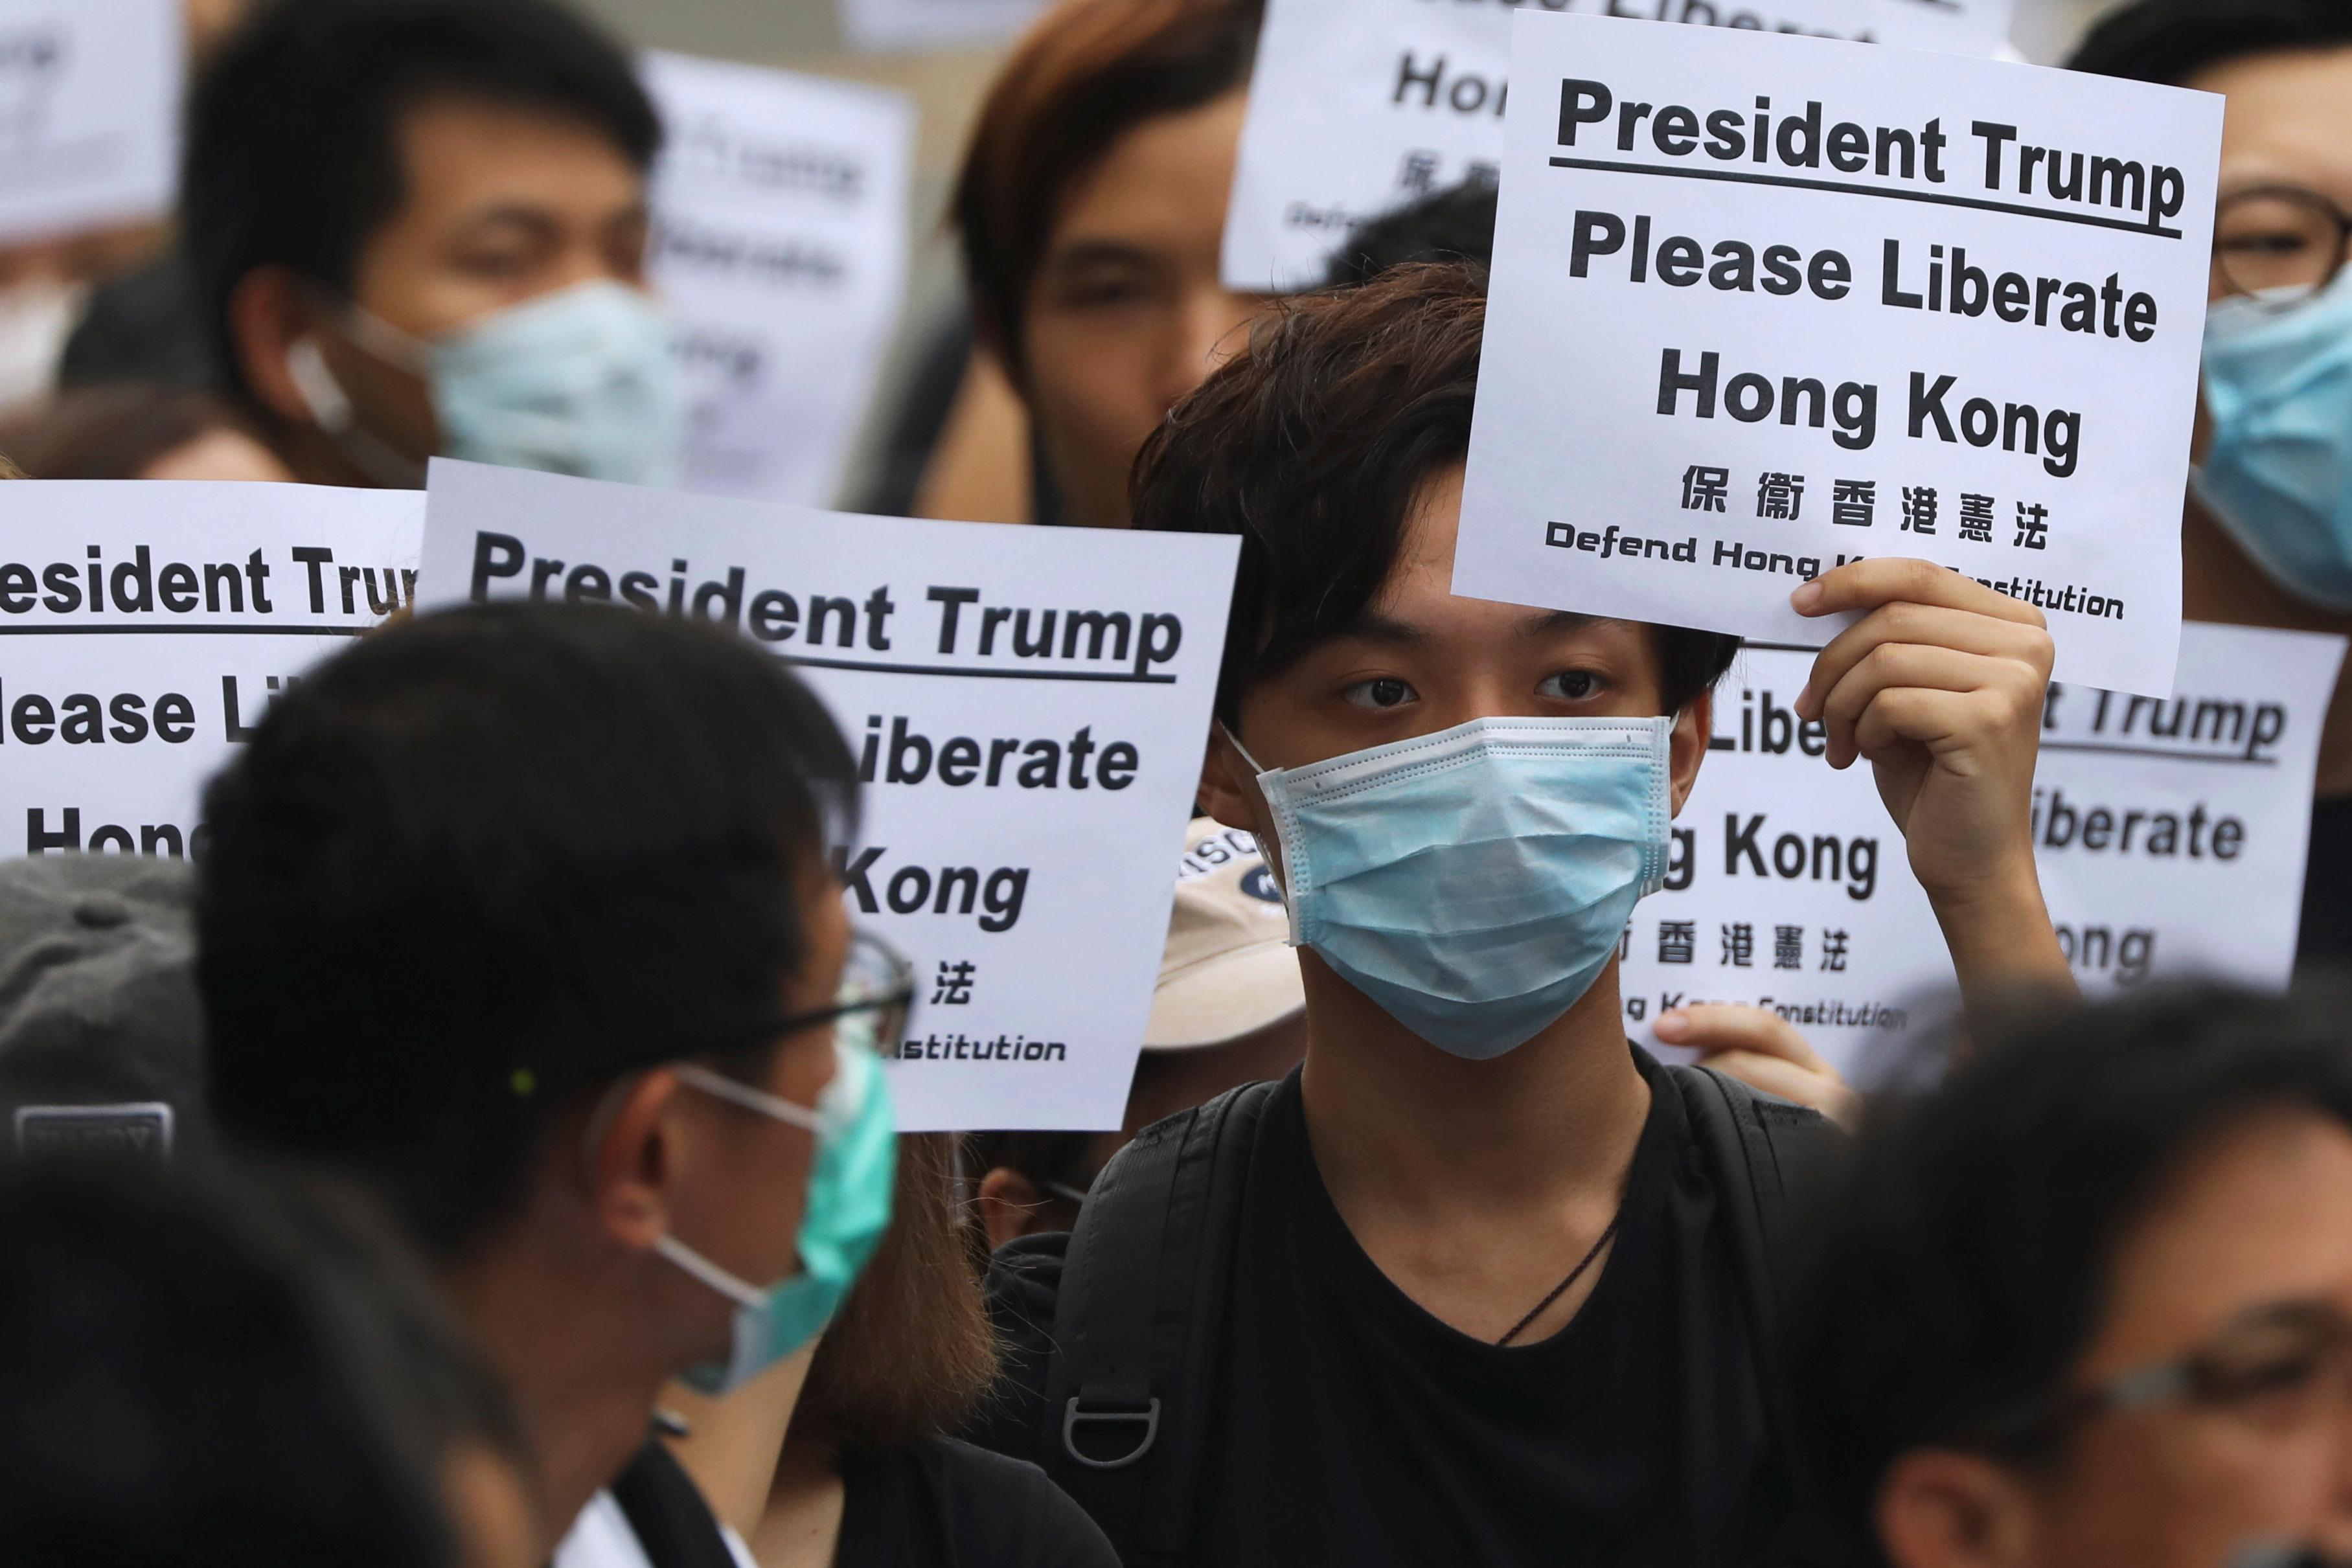 Hong Kong activists call on G20 leaders to help 'liberate' city